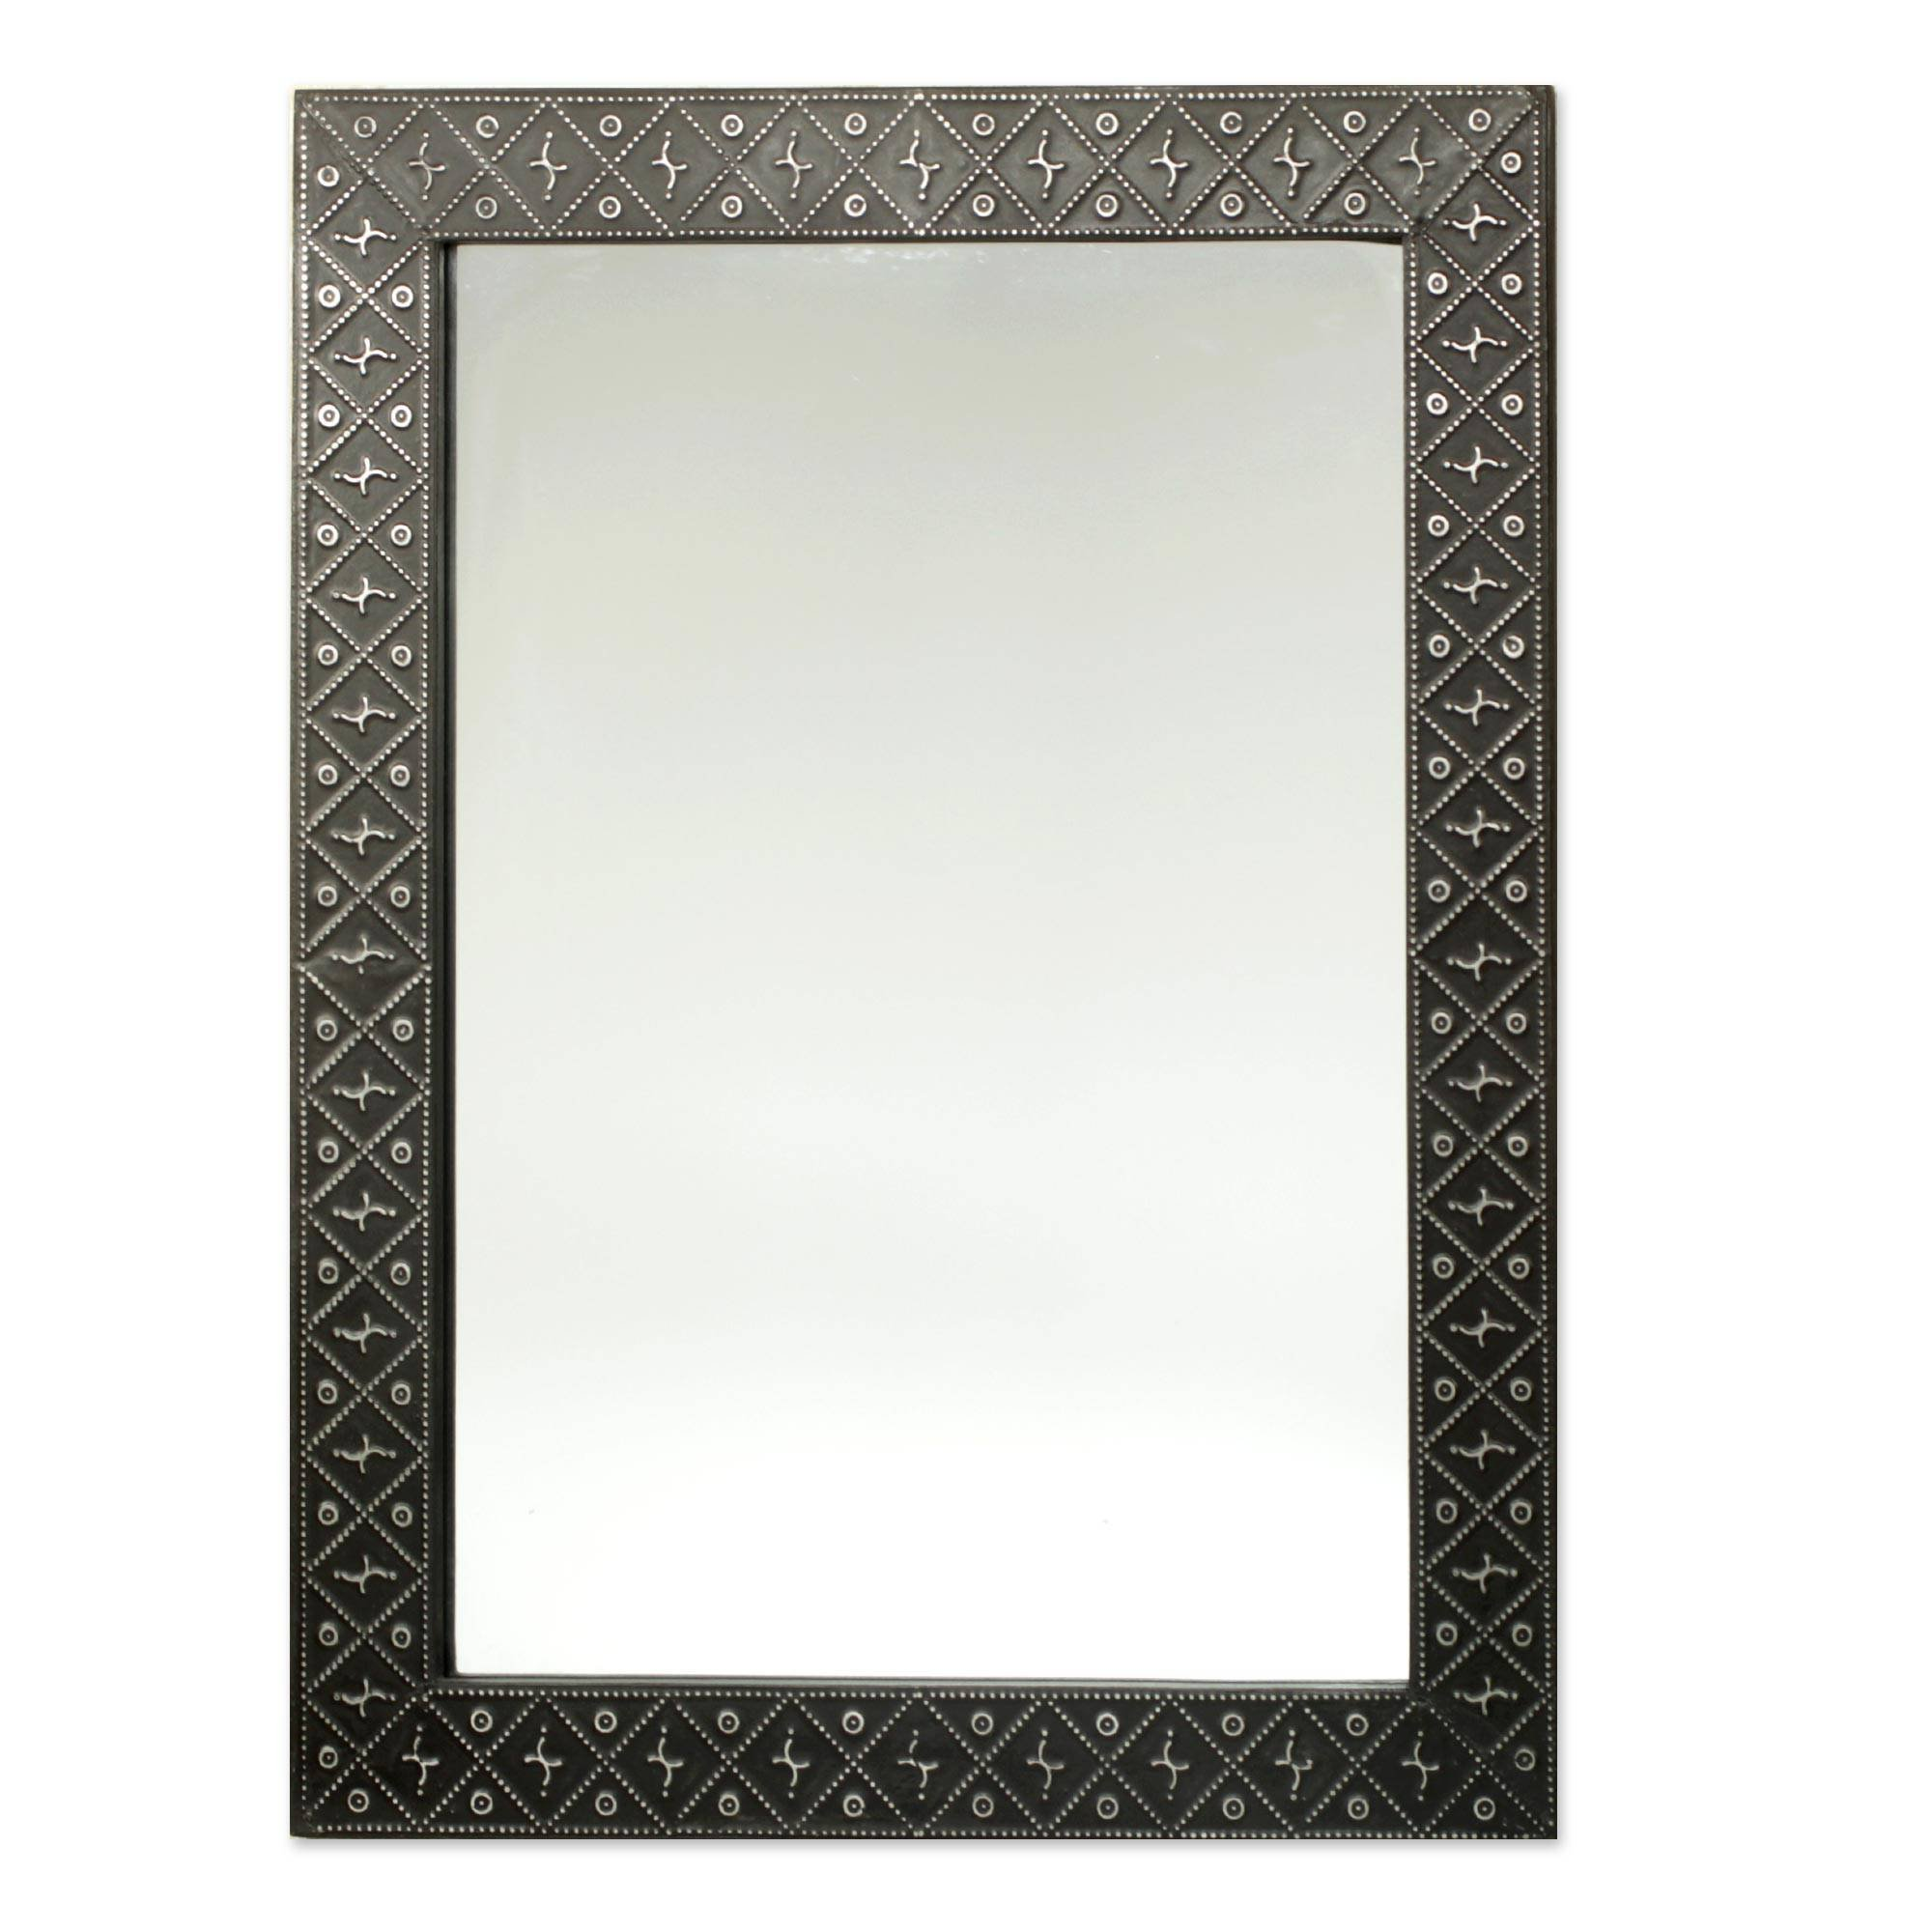 NOVICA Contemporary Wood Wall Mounted Mirror, Black 'African Prince'